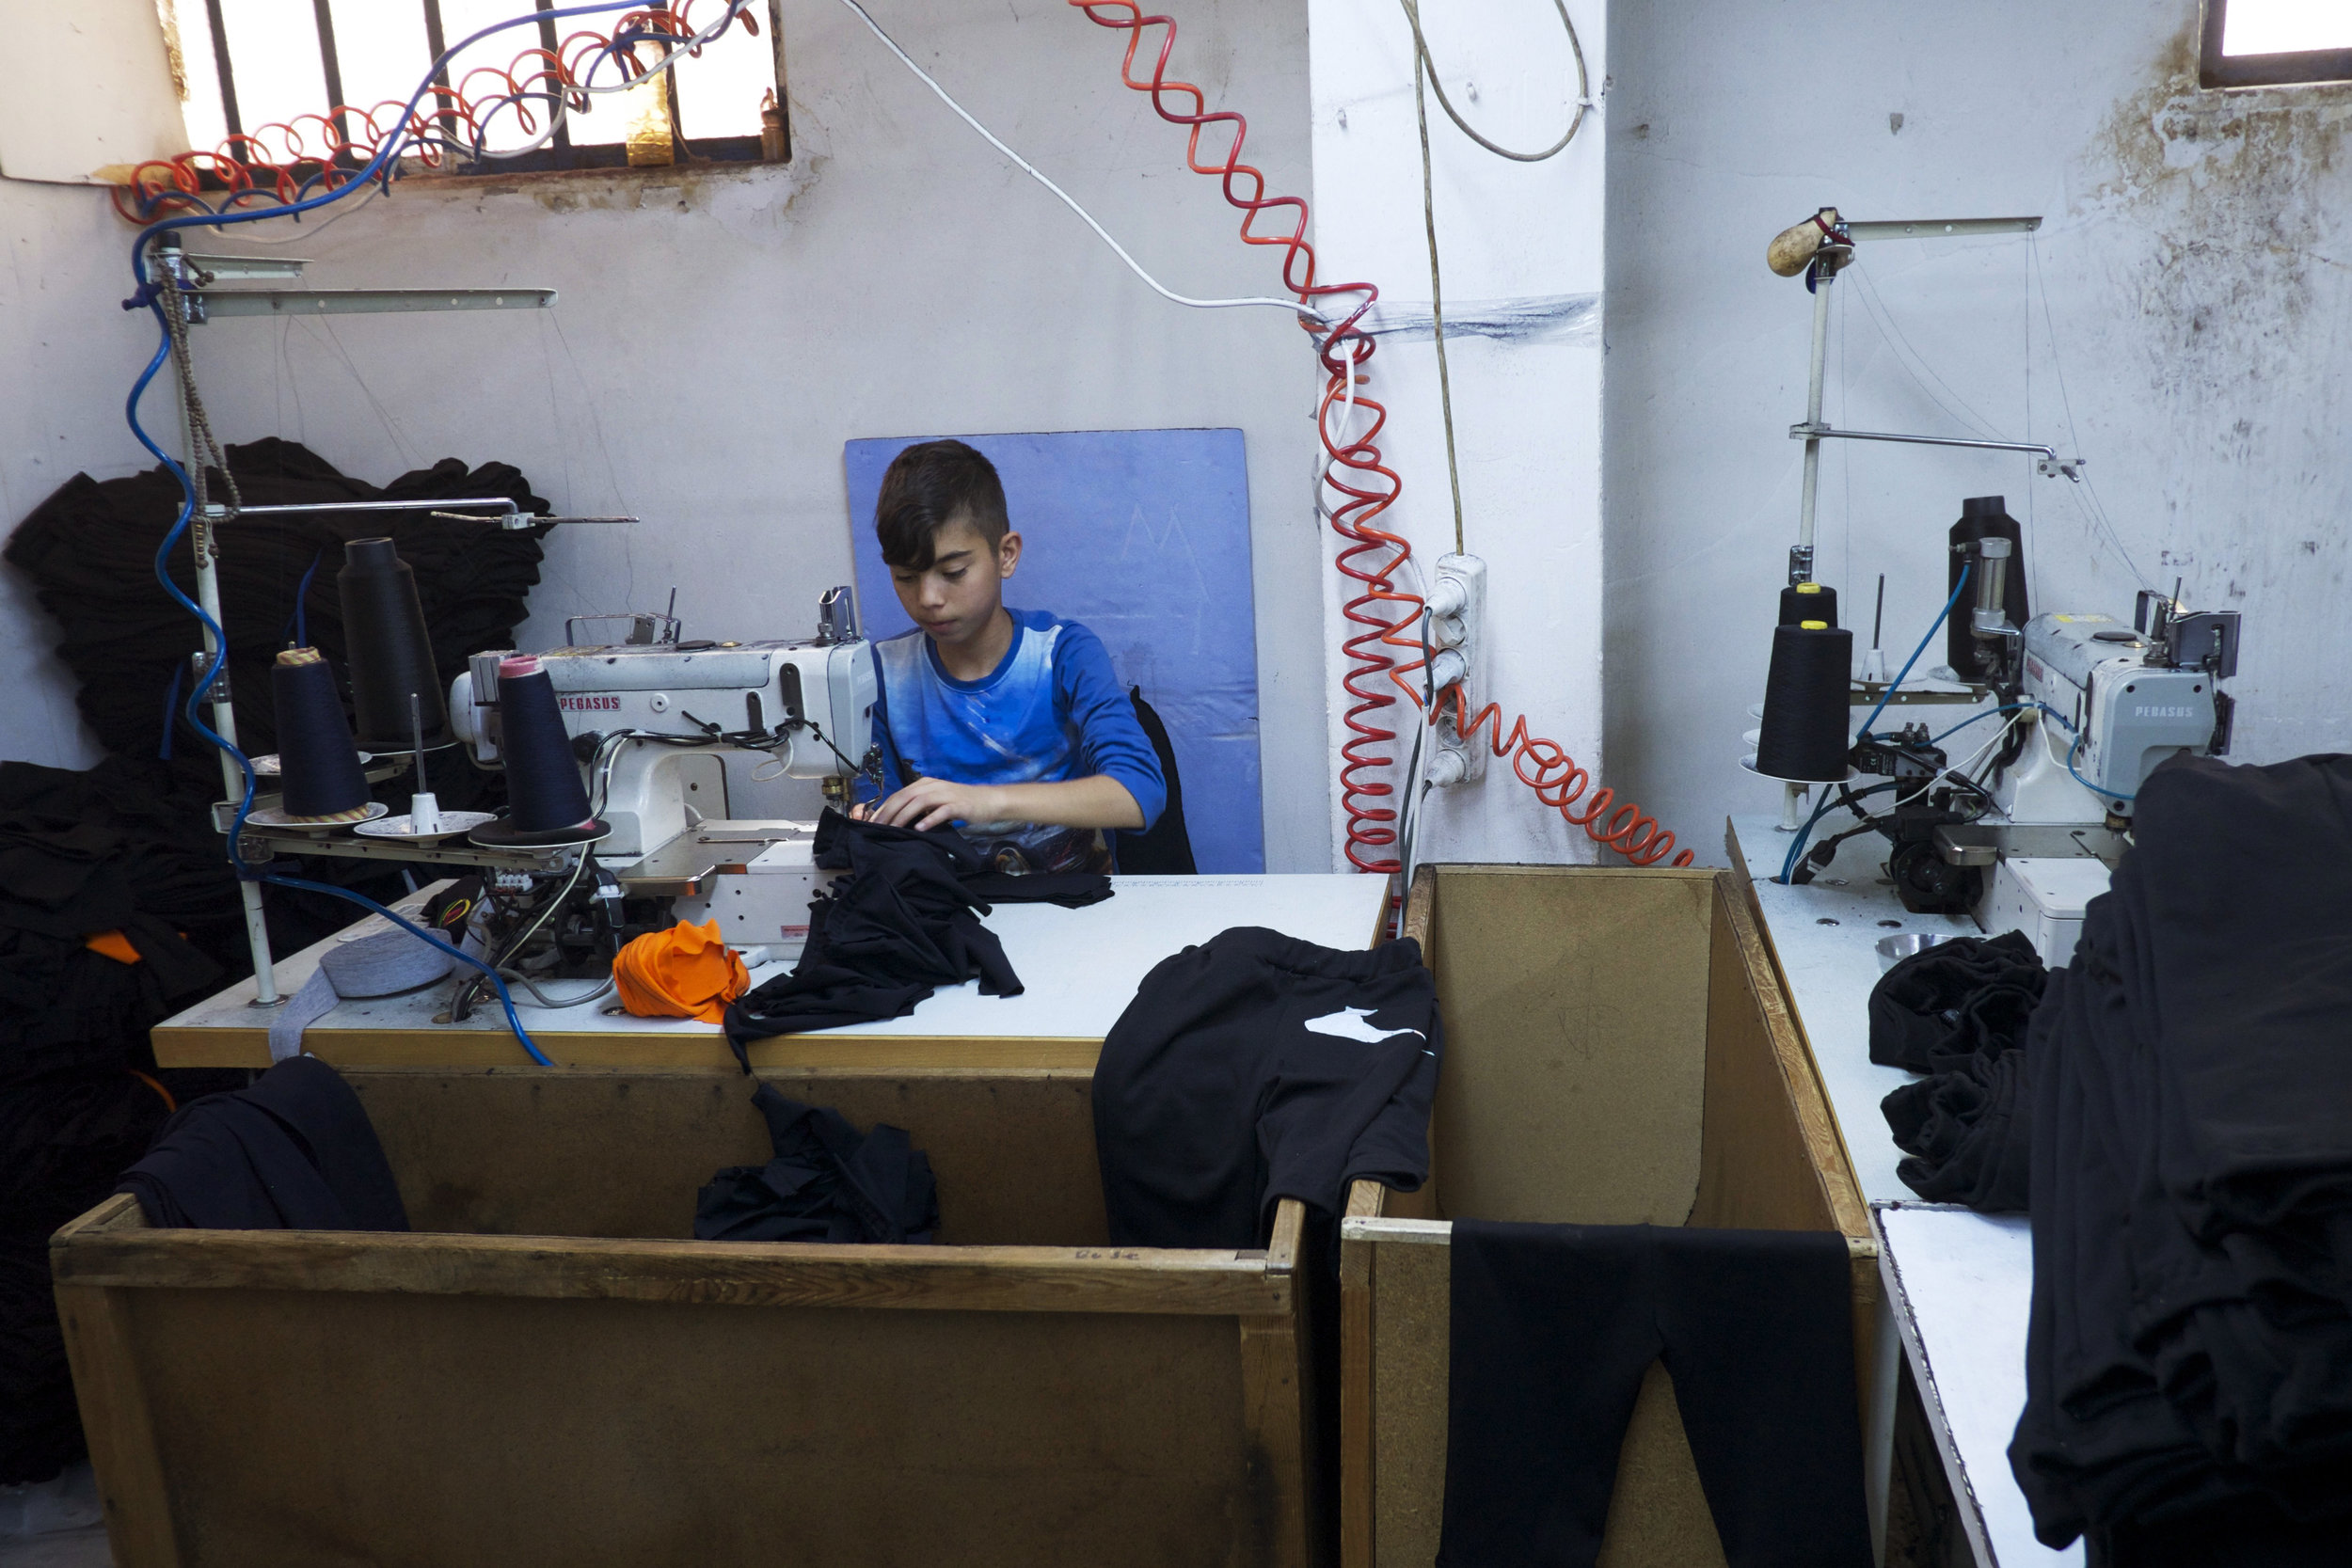 Up to 500,000 Syrian refugees are estimated to be working in Turkey's textile industry, and many of them are children. (Credit: Dene-Hern Chen)